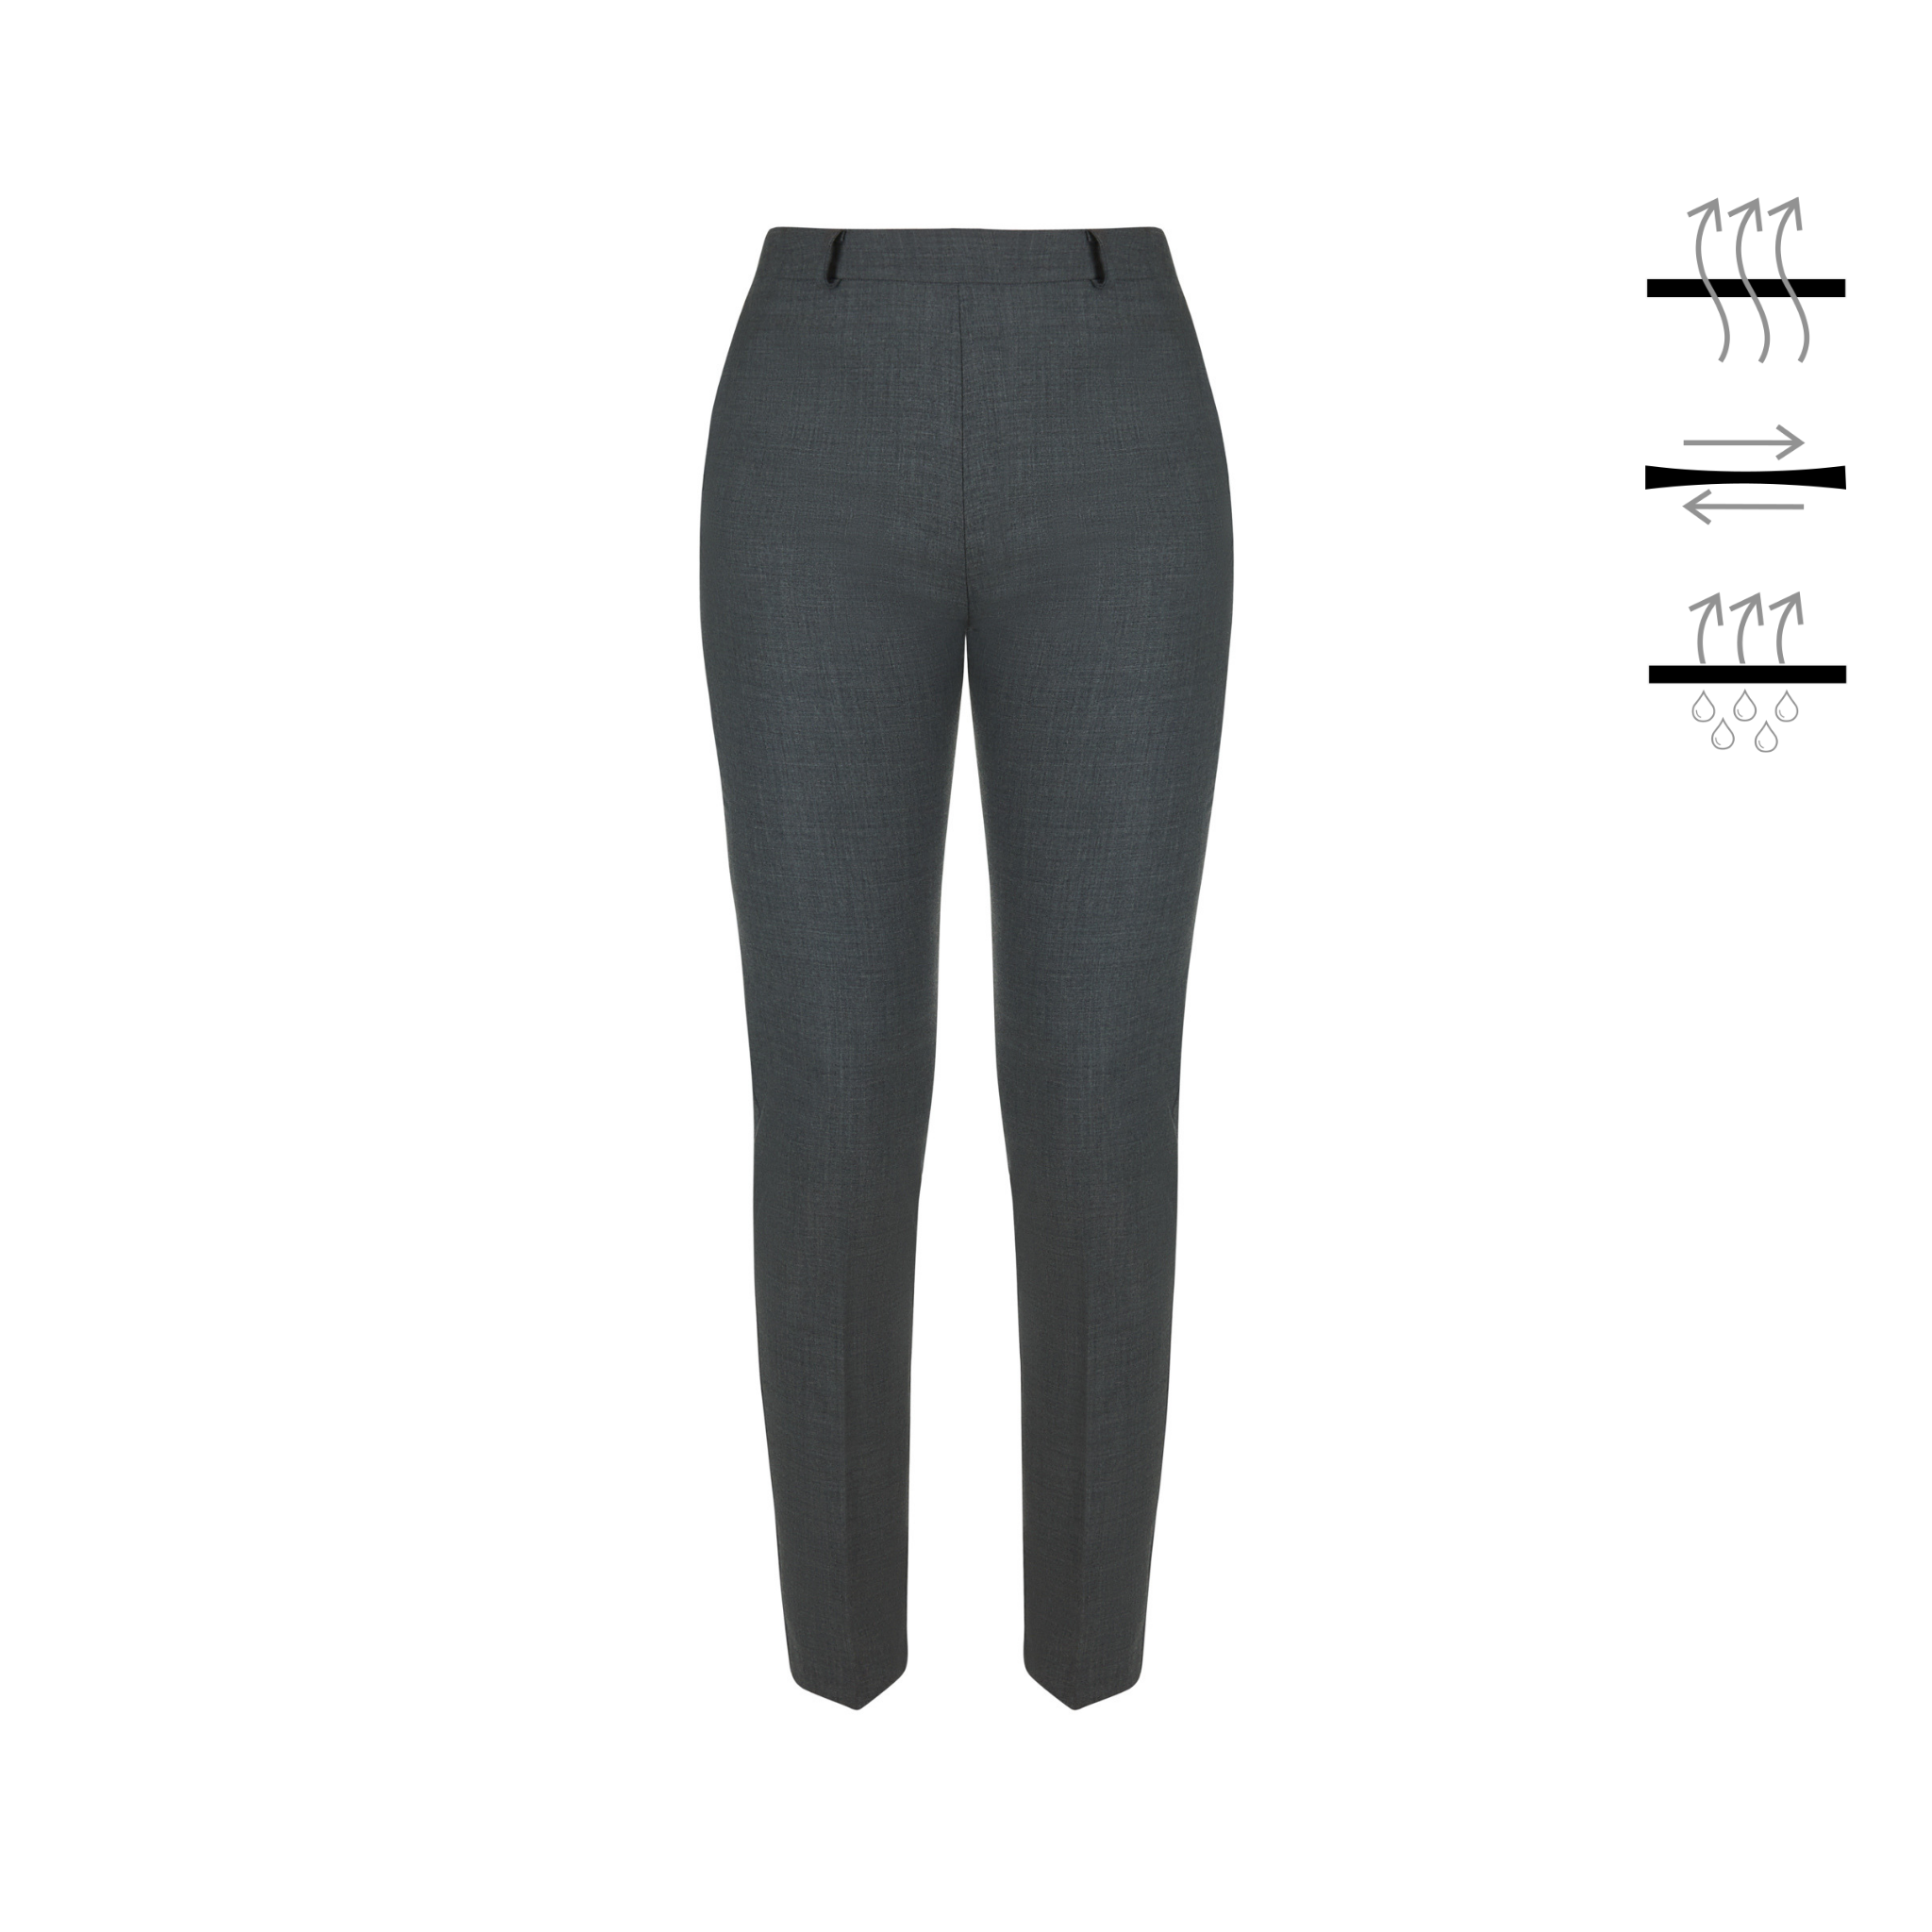 Tailored grey trousers made from stretch premium wool